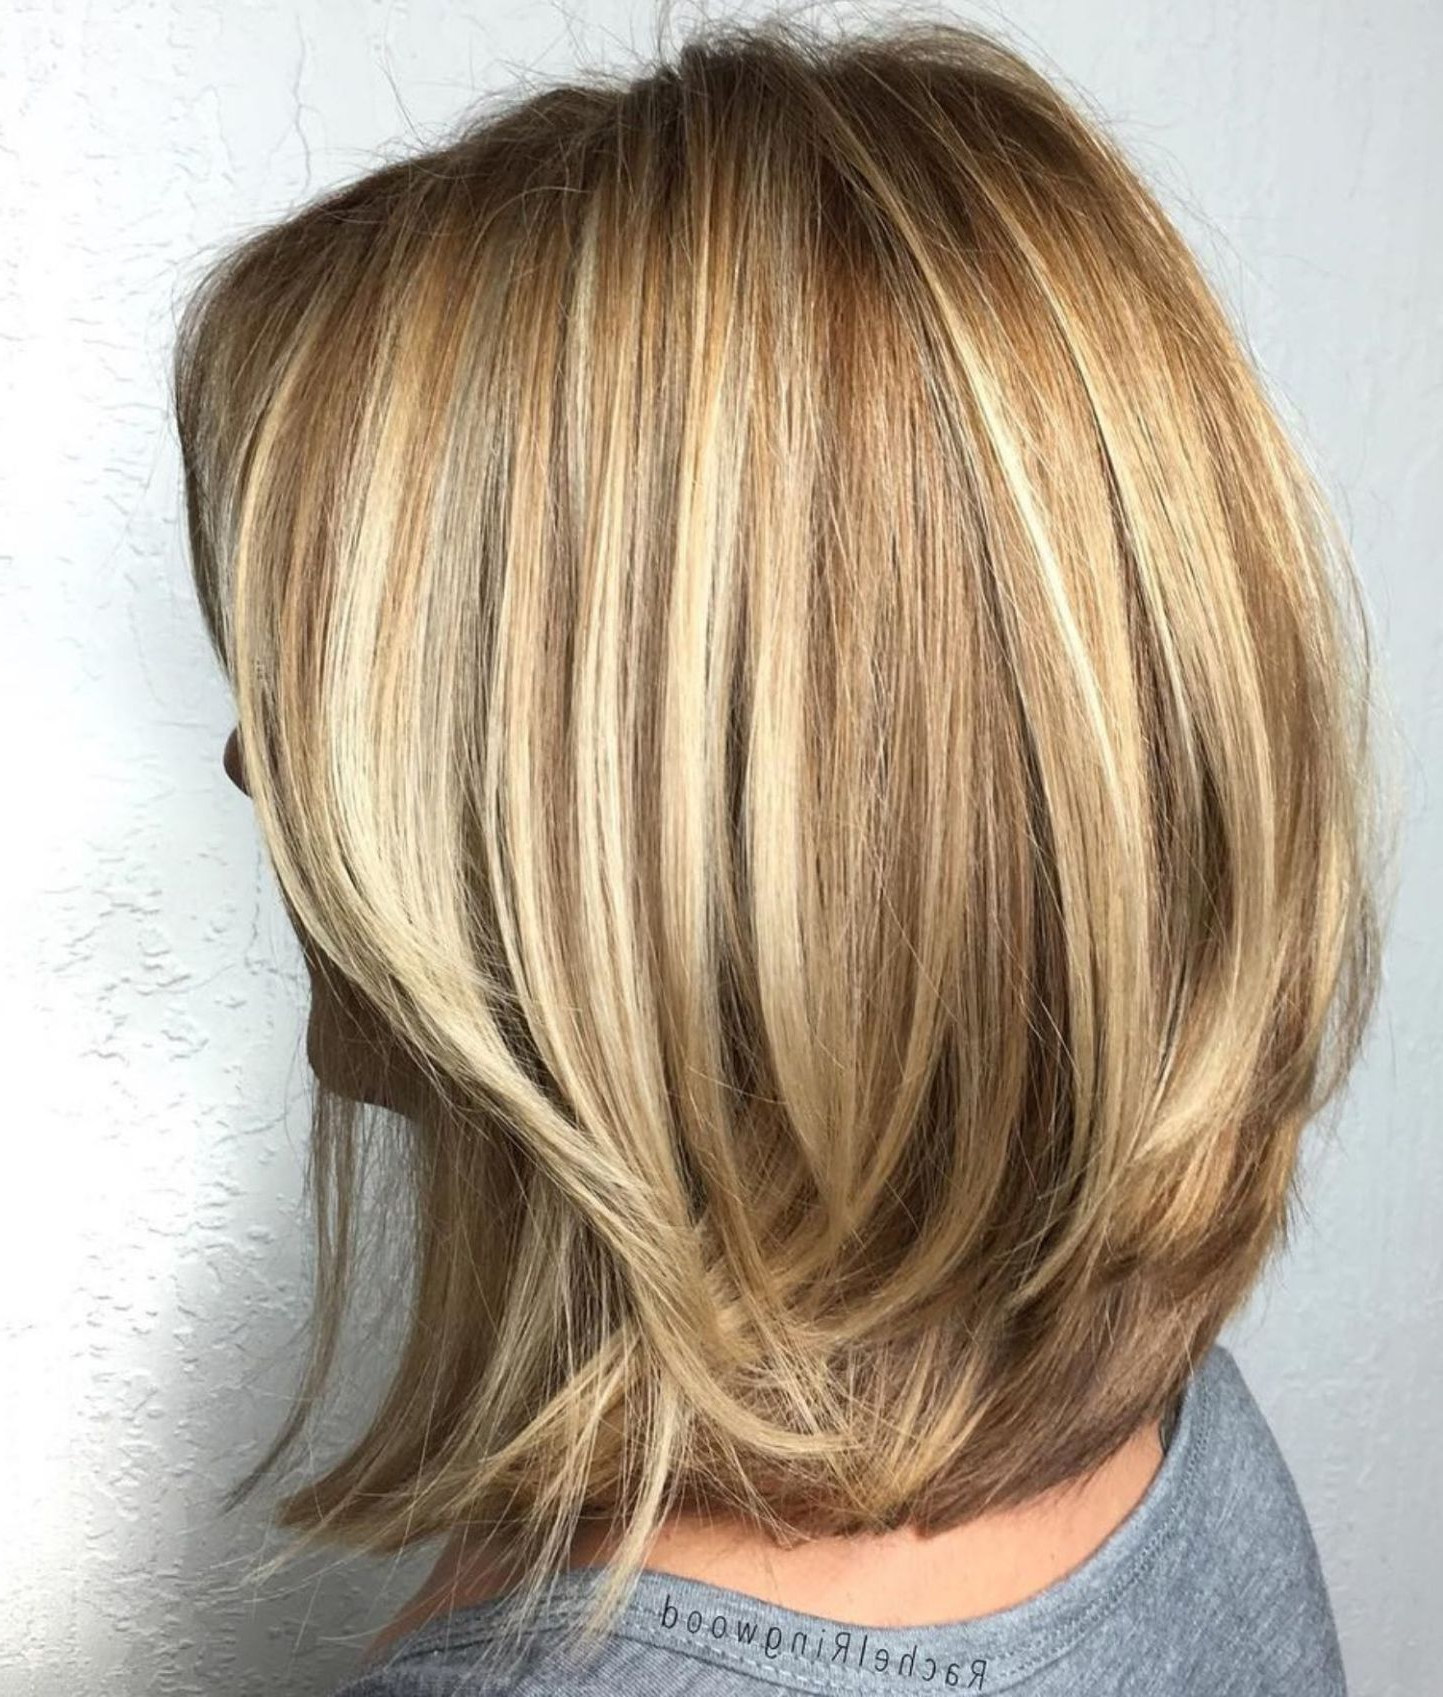 70 Brightest Medium Layered Haircuts To Light You Up (View 2 of 20)